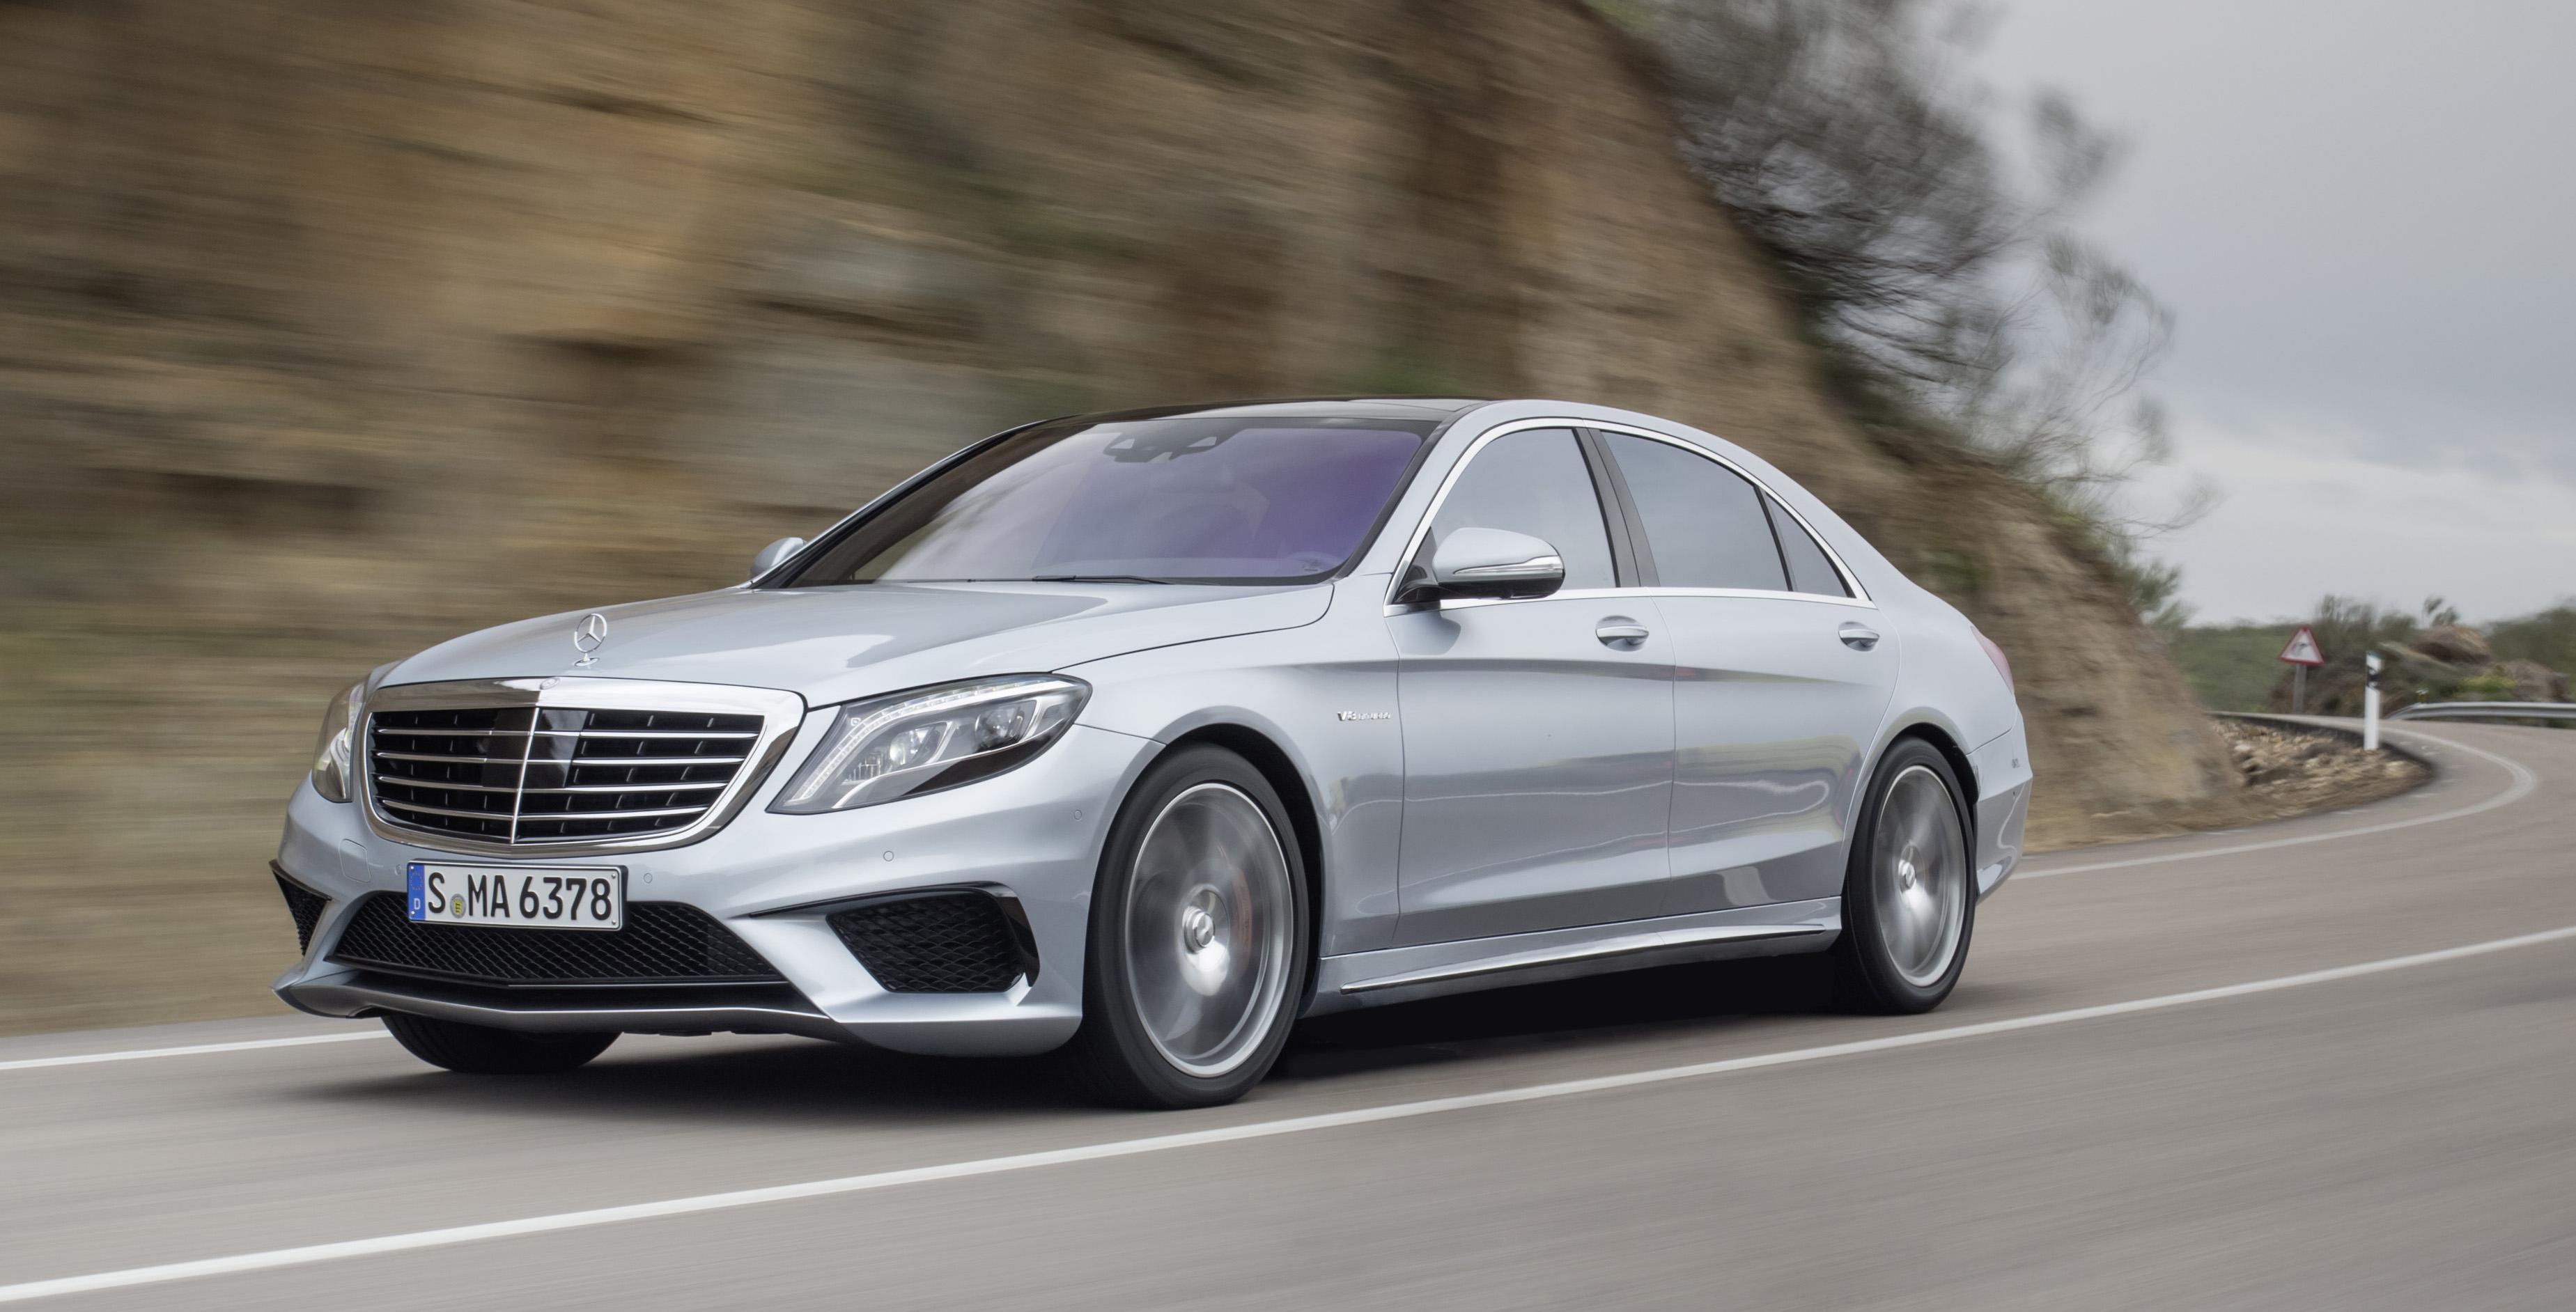 S 63 Amg 2017 >> W222 Mercedes-Benz S63 AMG breaks cover: 900Nm! Image 188025